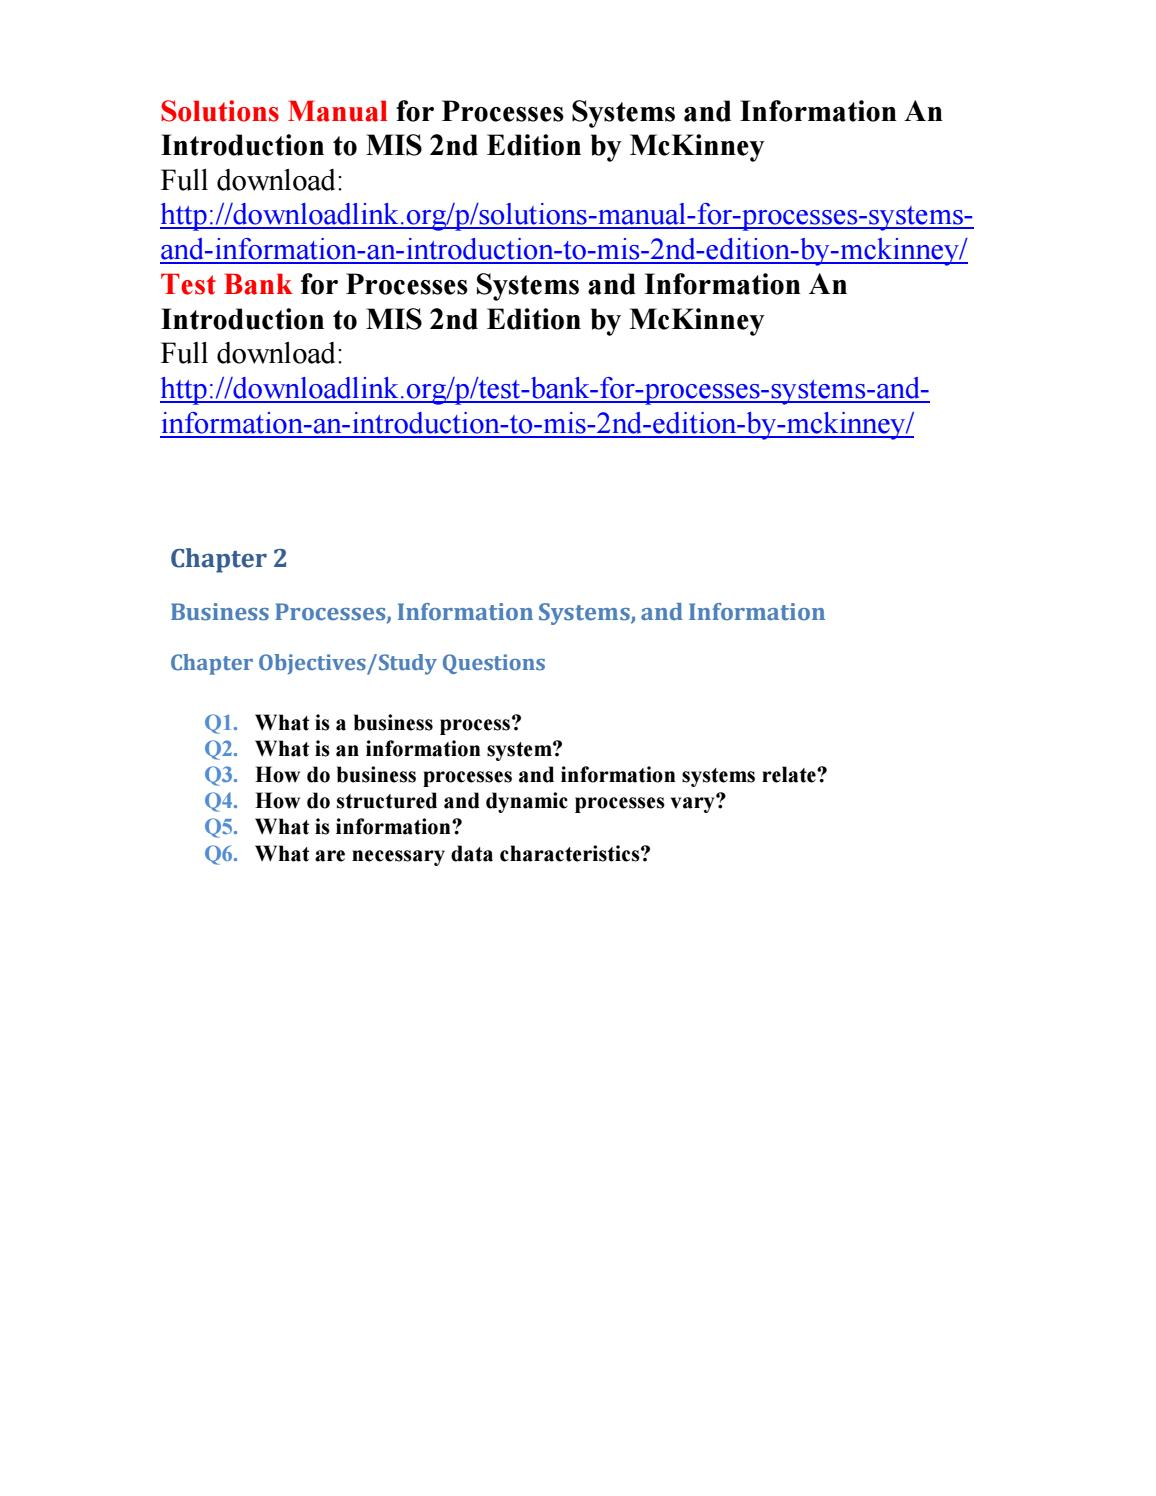 Solutions manual for processes systems and information an